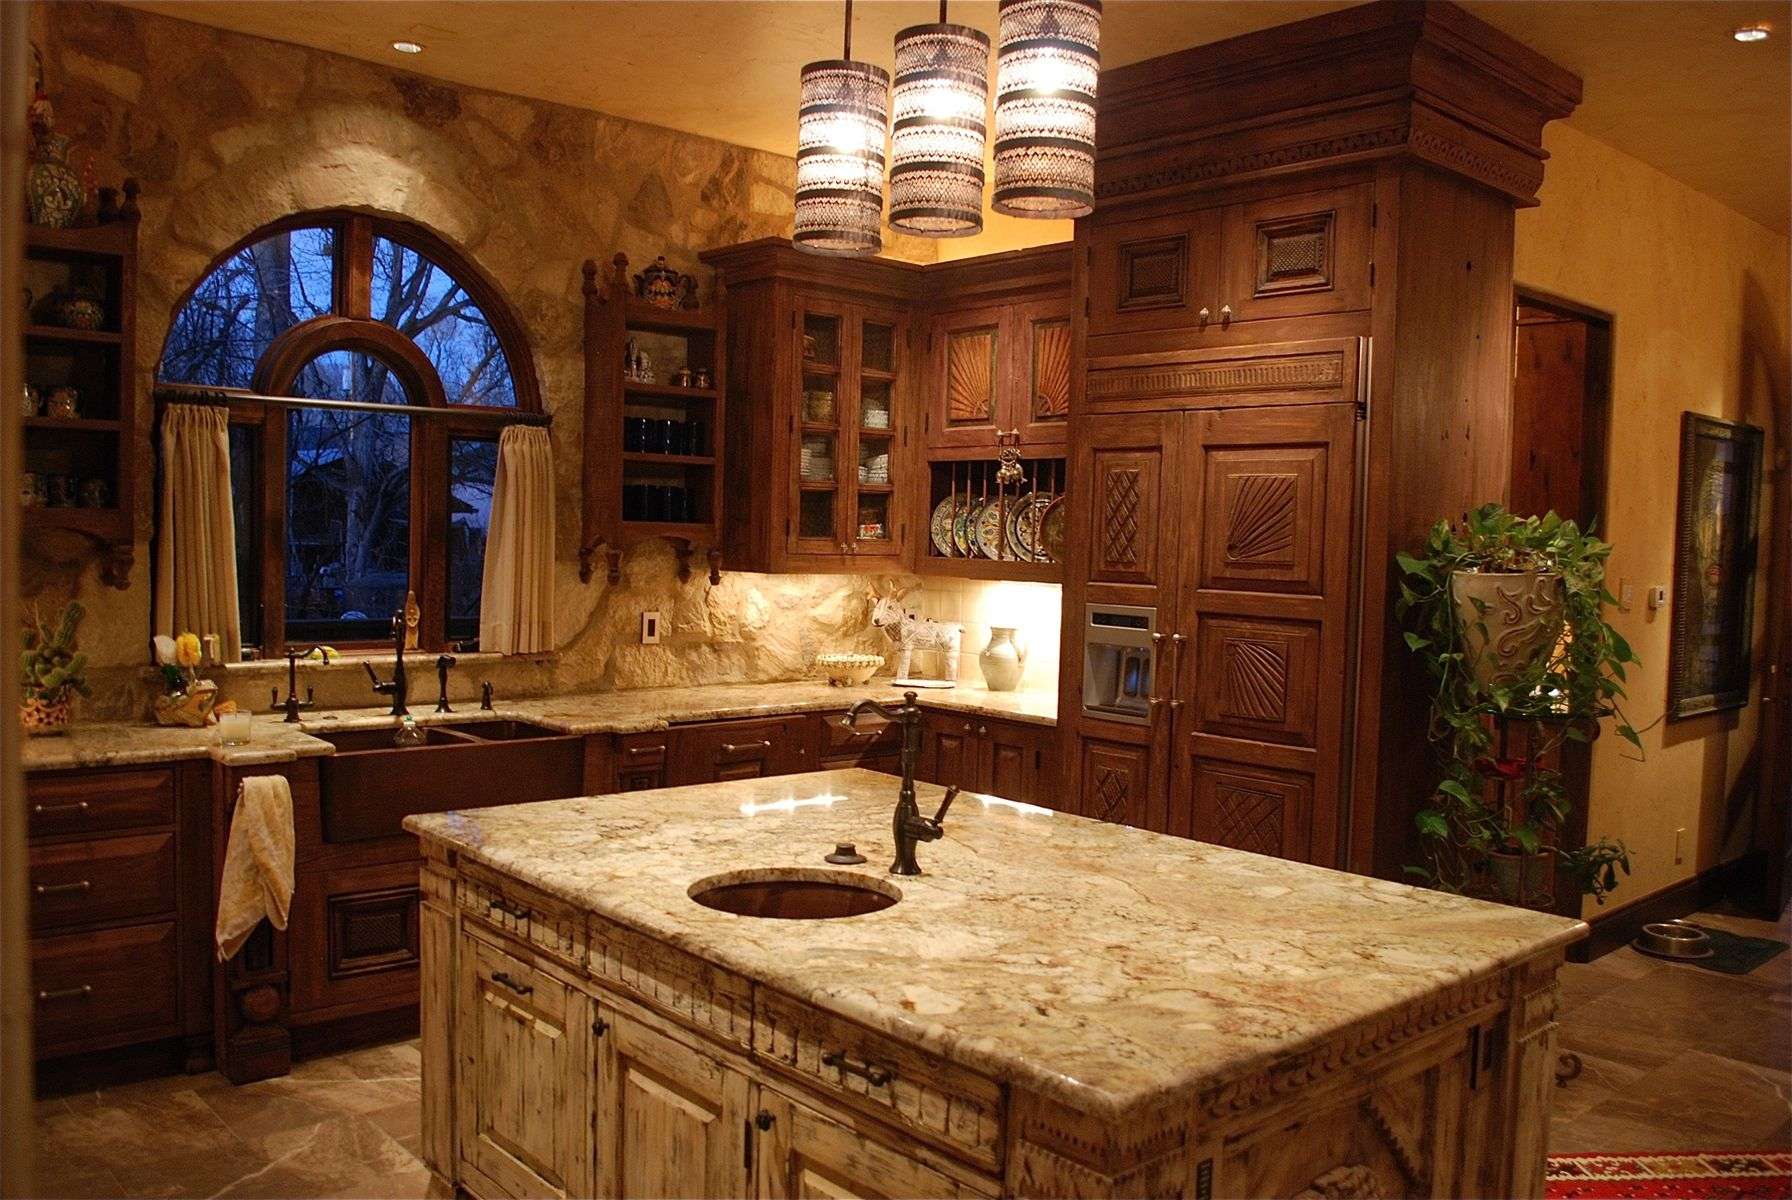 Custom Made Cabinets Hand Made Custom Painted Kitchen Cabinets By Tilde Design